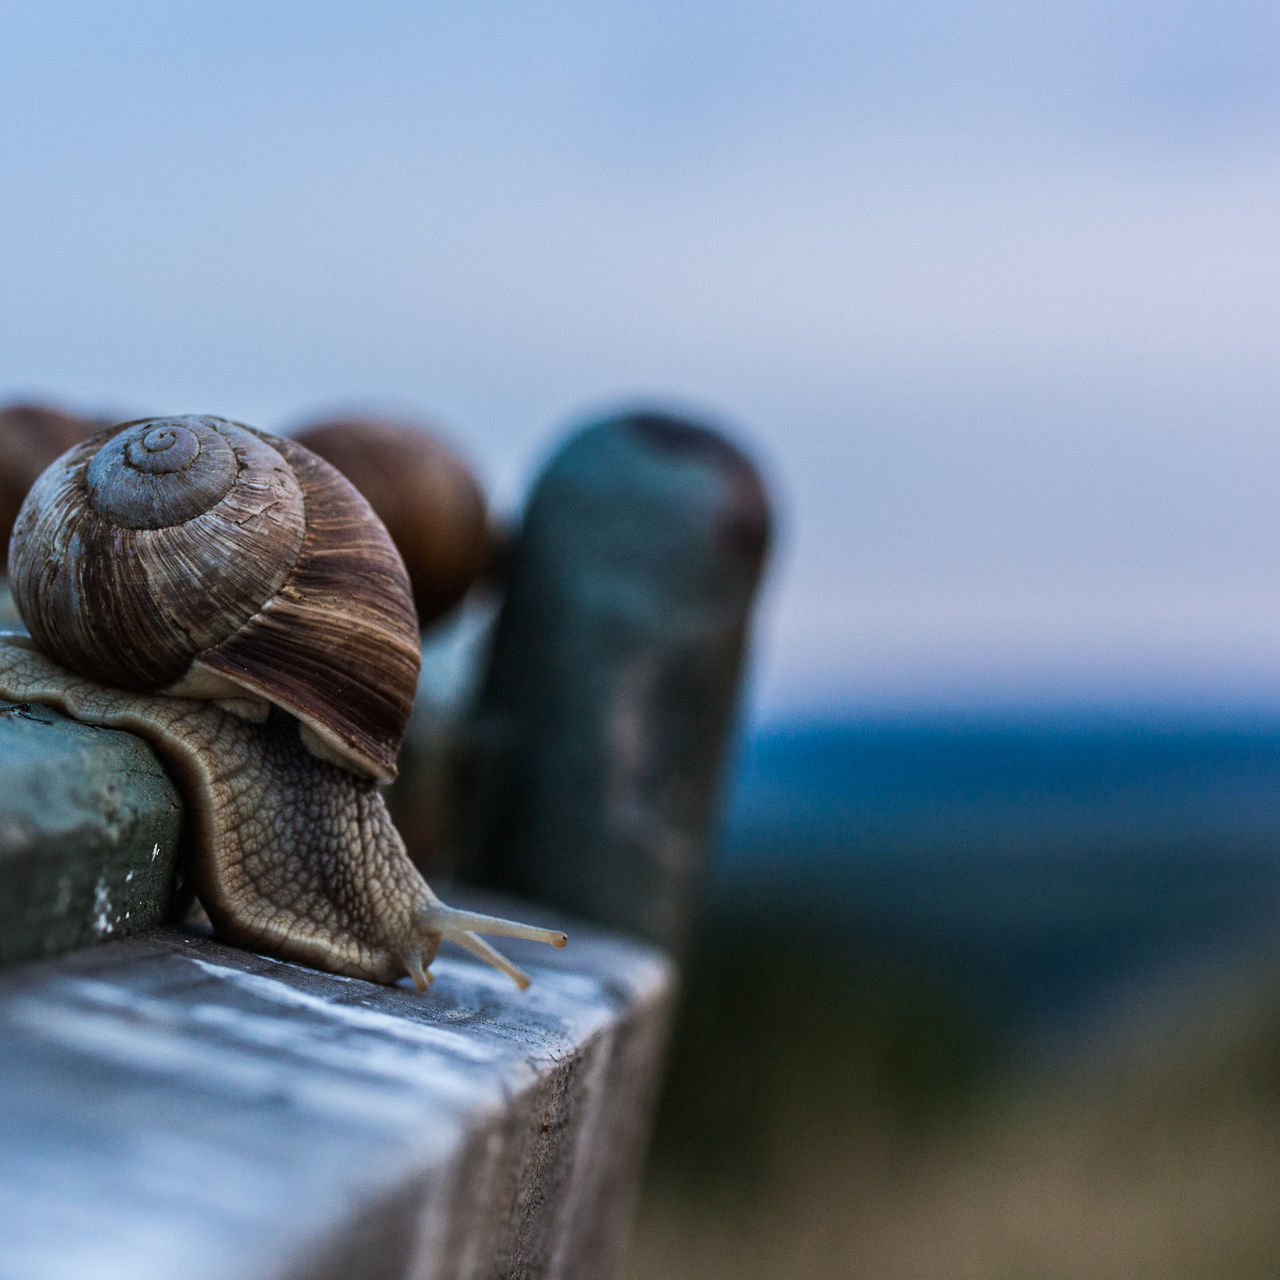 snail, nature, close-up, animal themes, gastropod, no people, focus on foreground, day, one animal, outdoors, animals in the wild, water, beauty in nature, sky